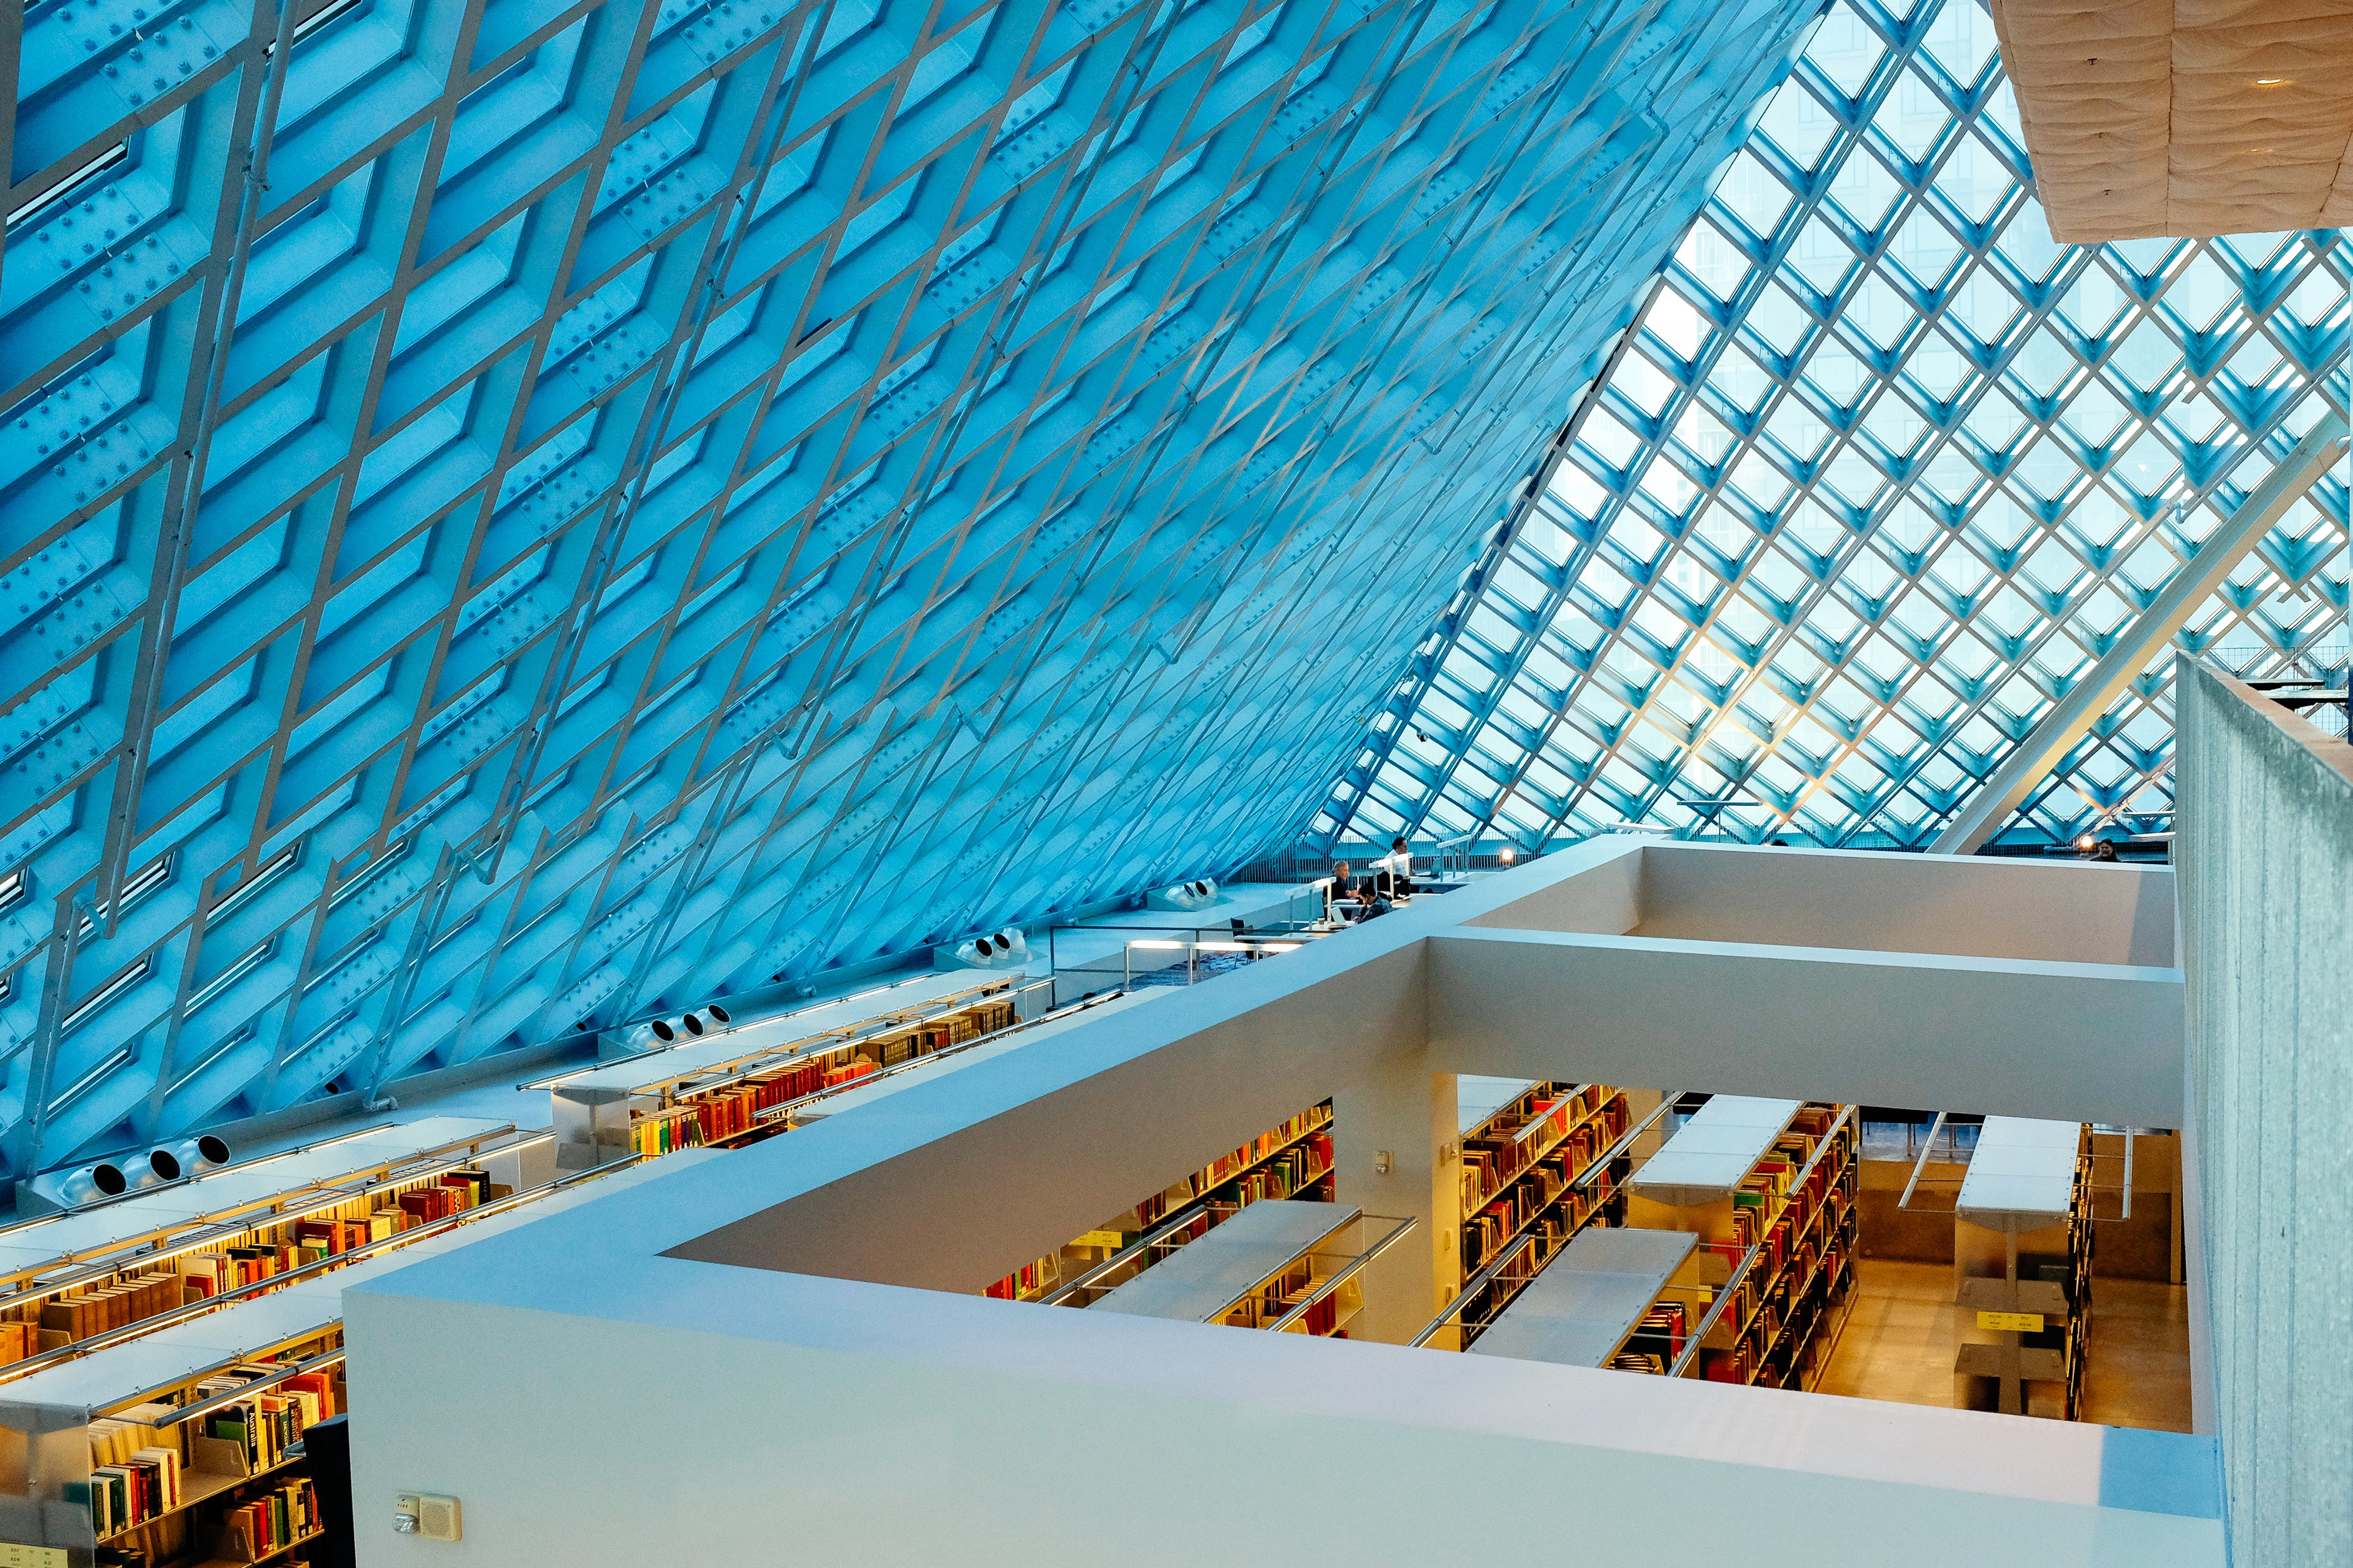 The inside of a library with a geometrically patterned glass ceiling and shelves, books, and tables. Photo by Pavan Trikutam.